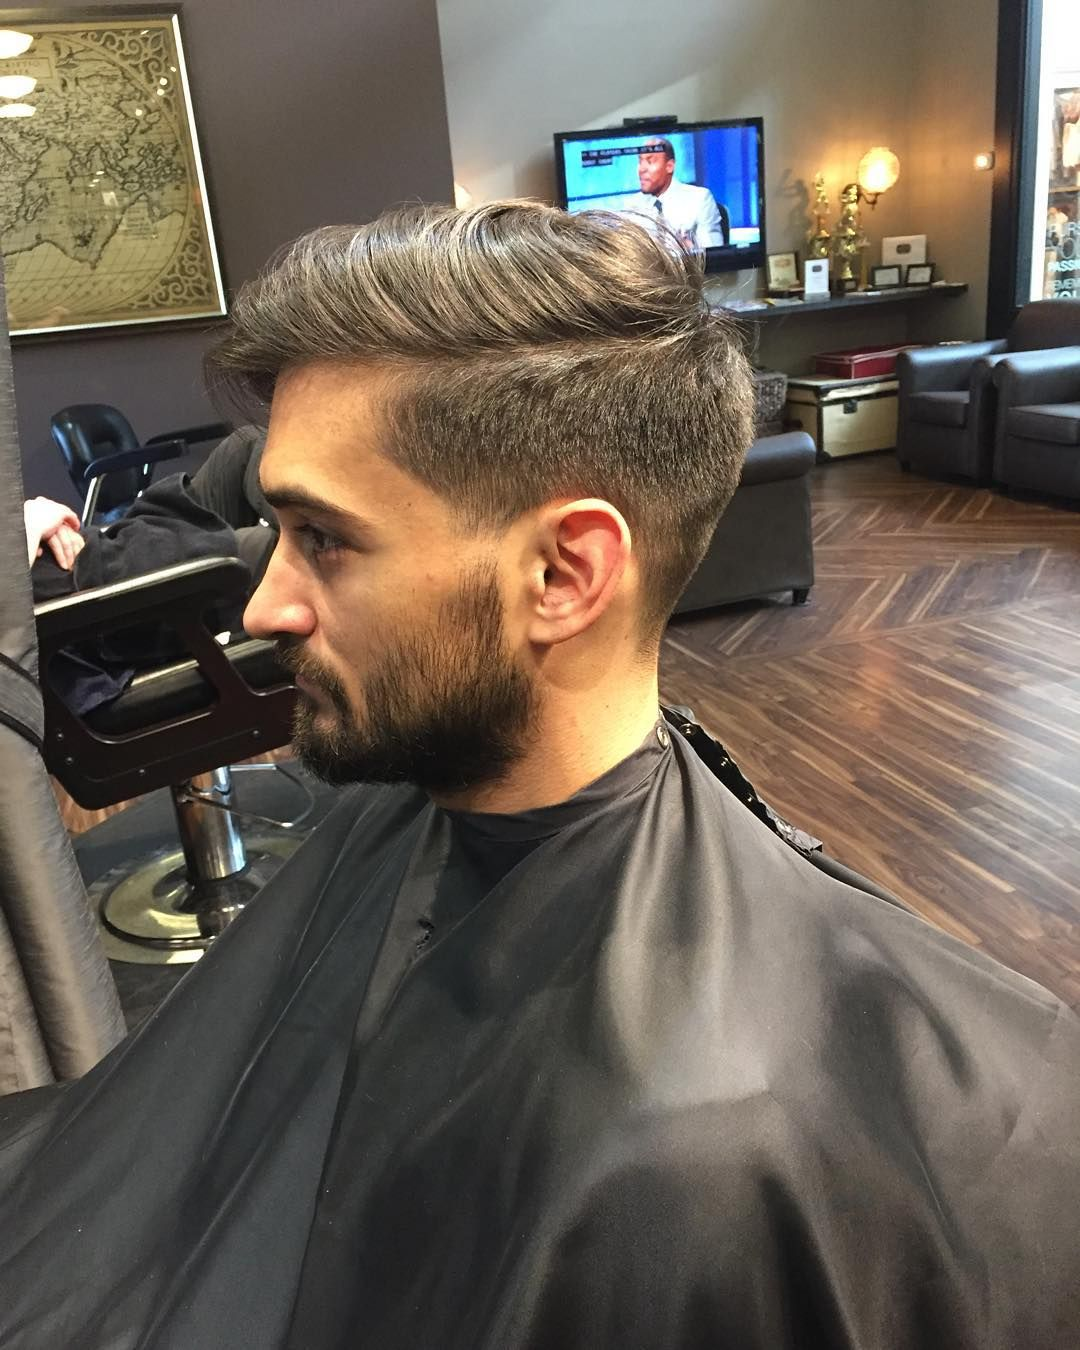 Pin By Macho Hairstyles On Trends: Awesome 25 Formal High And Tight Haircut Ideas